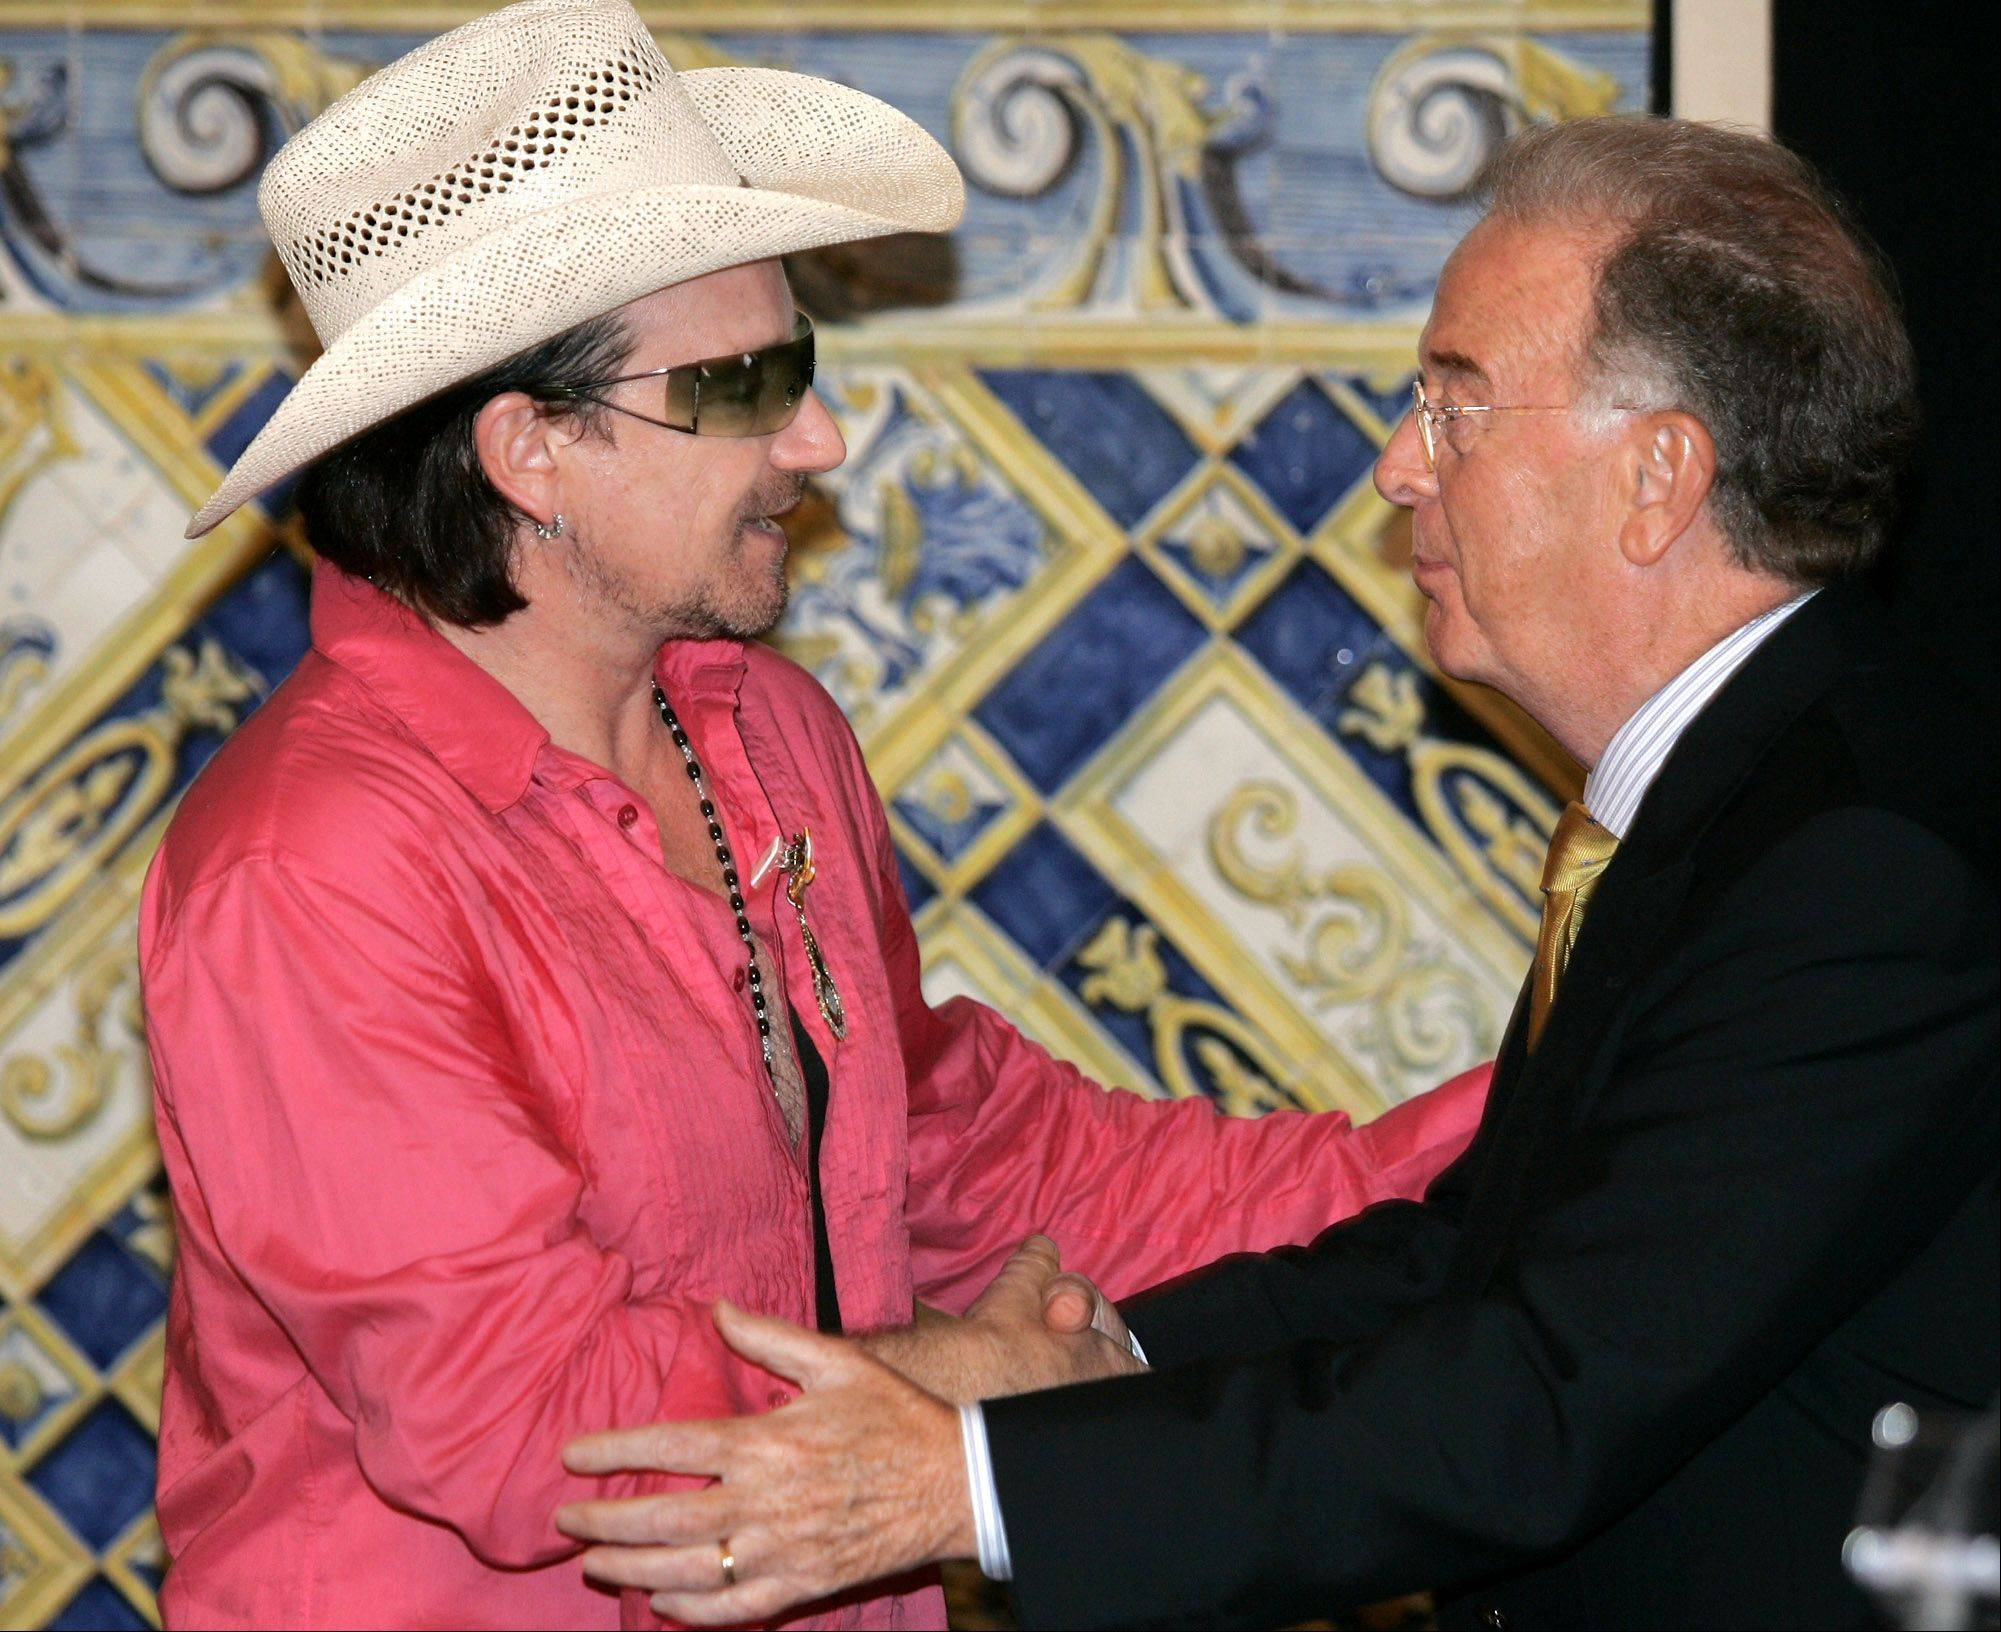 Irish rock band U2 leader Bono, left, shakes hands with Portuguese President Jorge Sampaio, Sunday, Aug. 14, 2005 after being awarded with Portugal's Order of Liberty decoration, one of the country's highest honors, at the Belem presidential palace in Lisbon. The four band members were presented with the medals in recognition of their work for humanitarian causes.